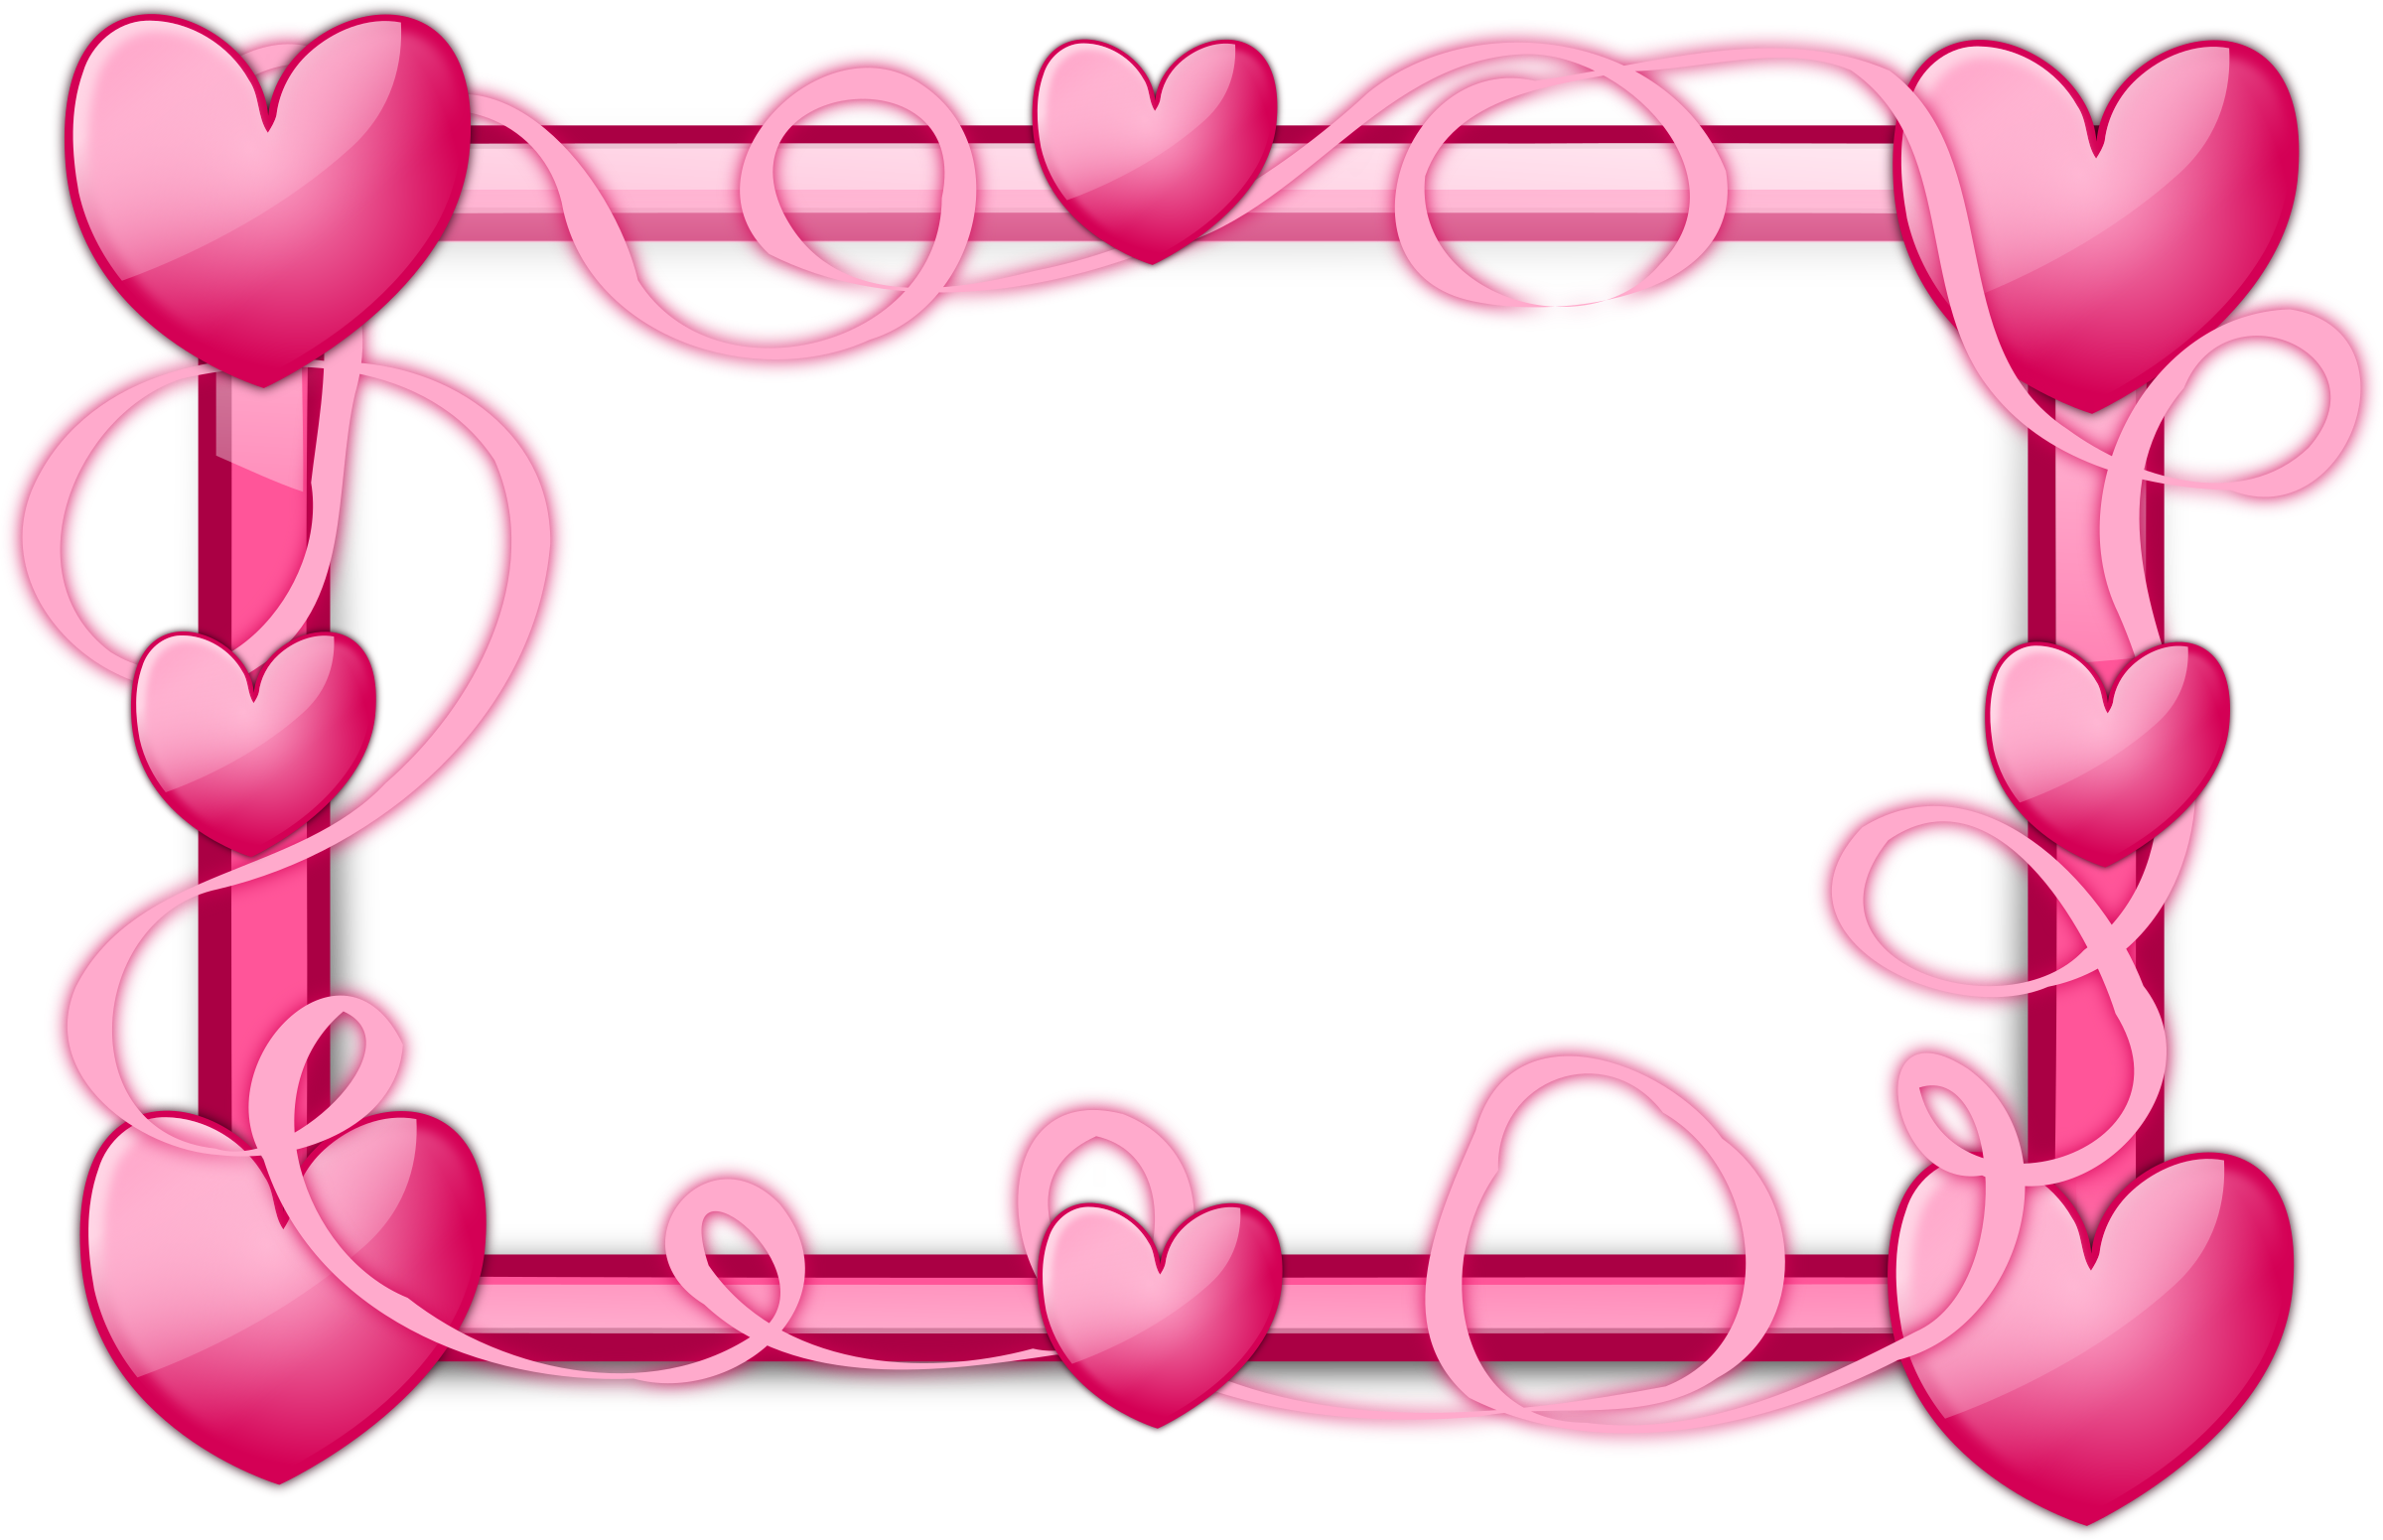 Streamers clipart frame. Pink hearts by inky